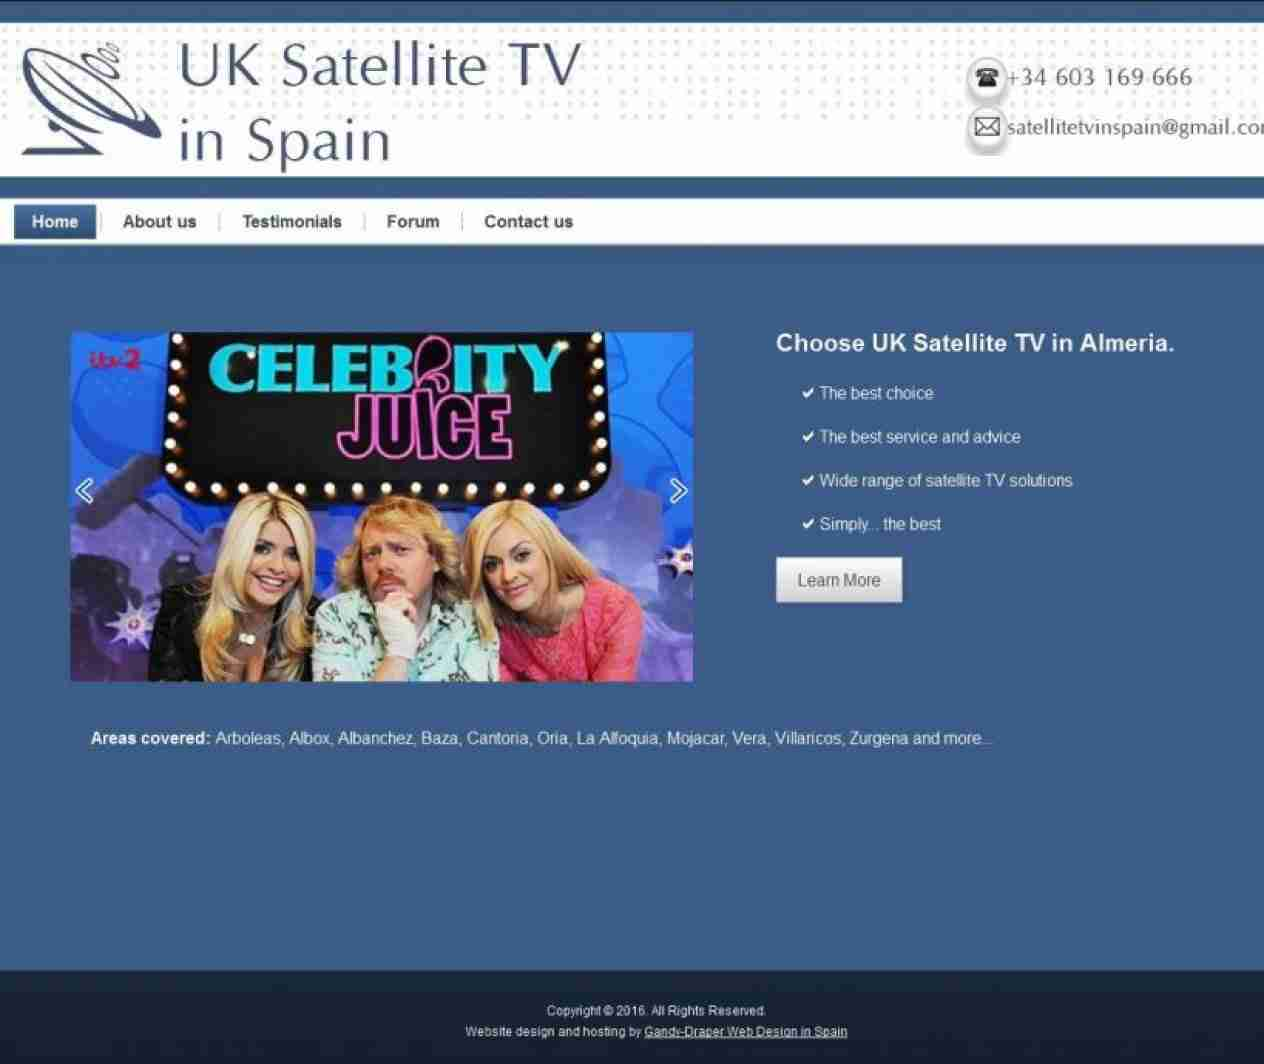 UK Satellite TV in Spain